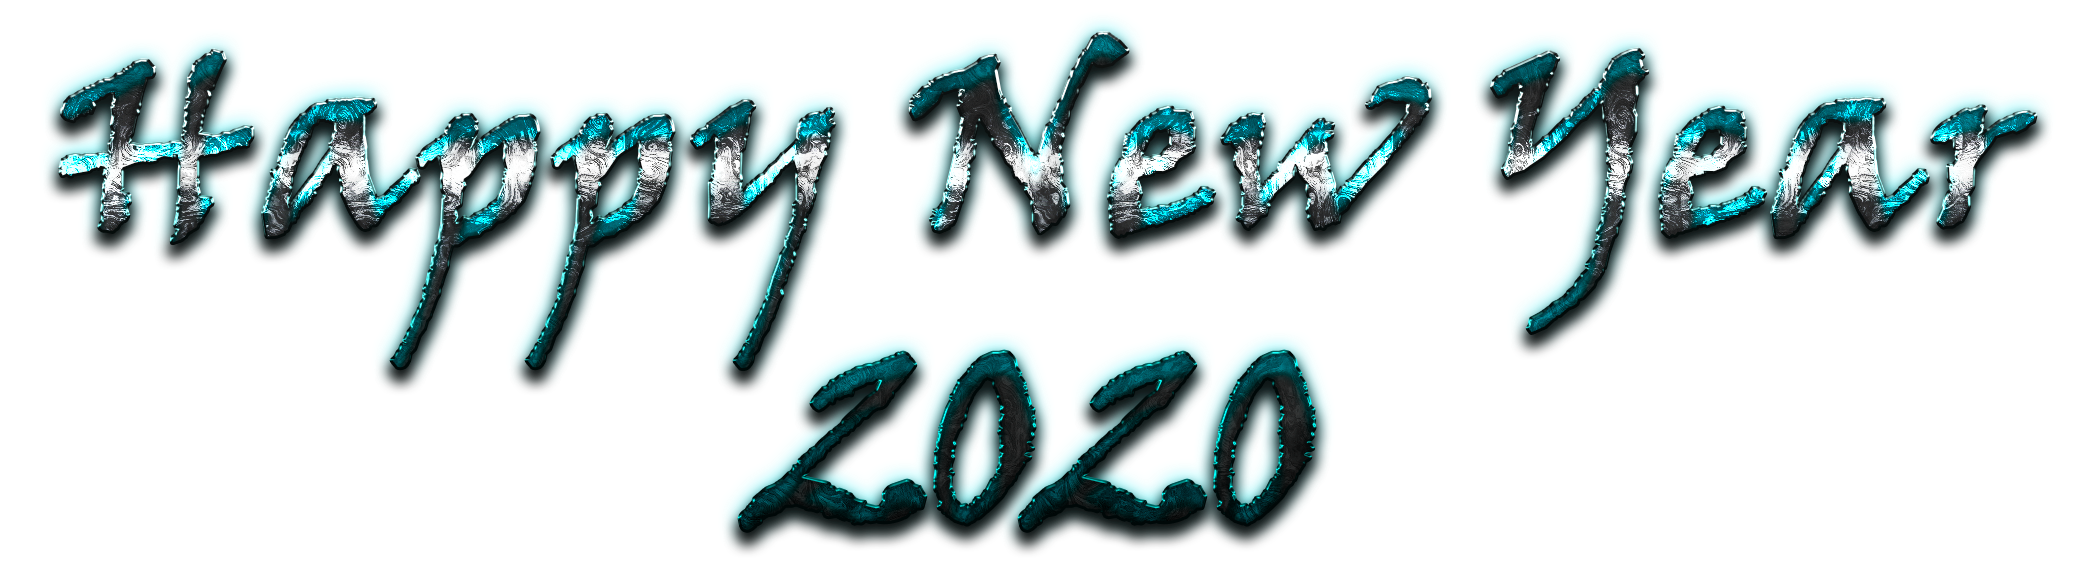 New Year 2020 PNG Images Transparent Free Download.